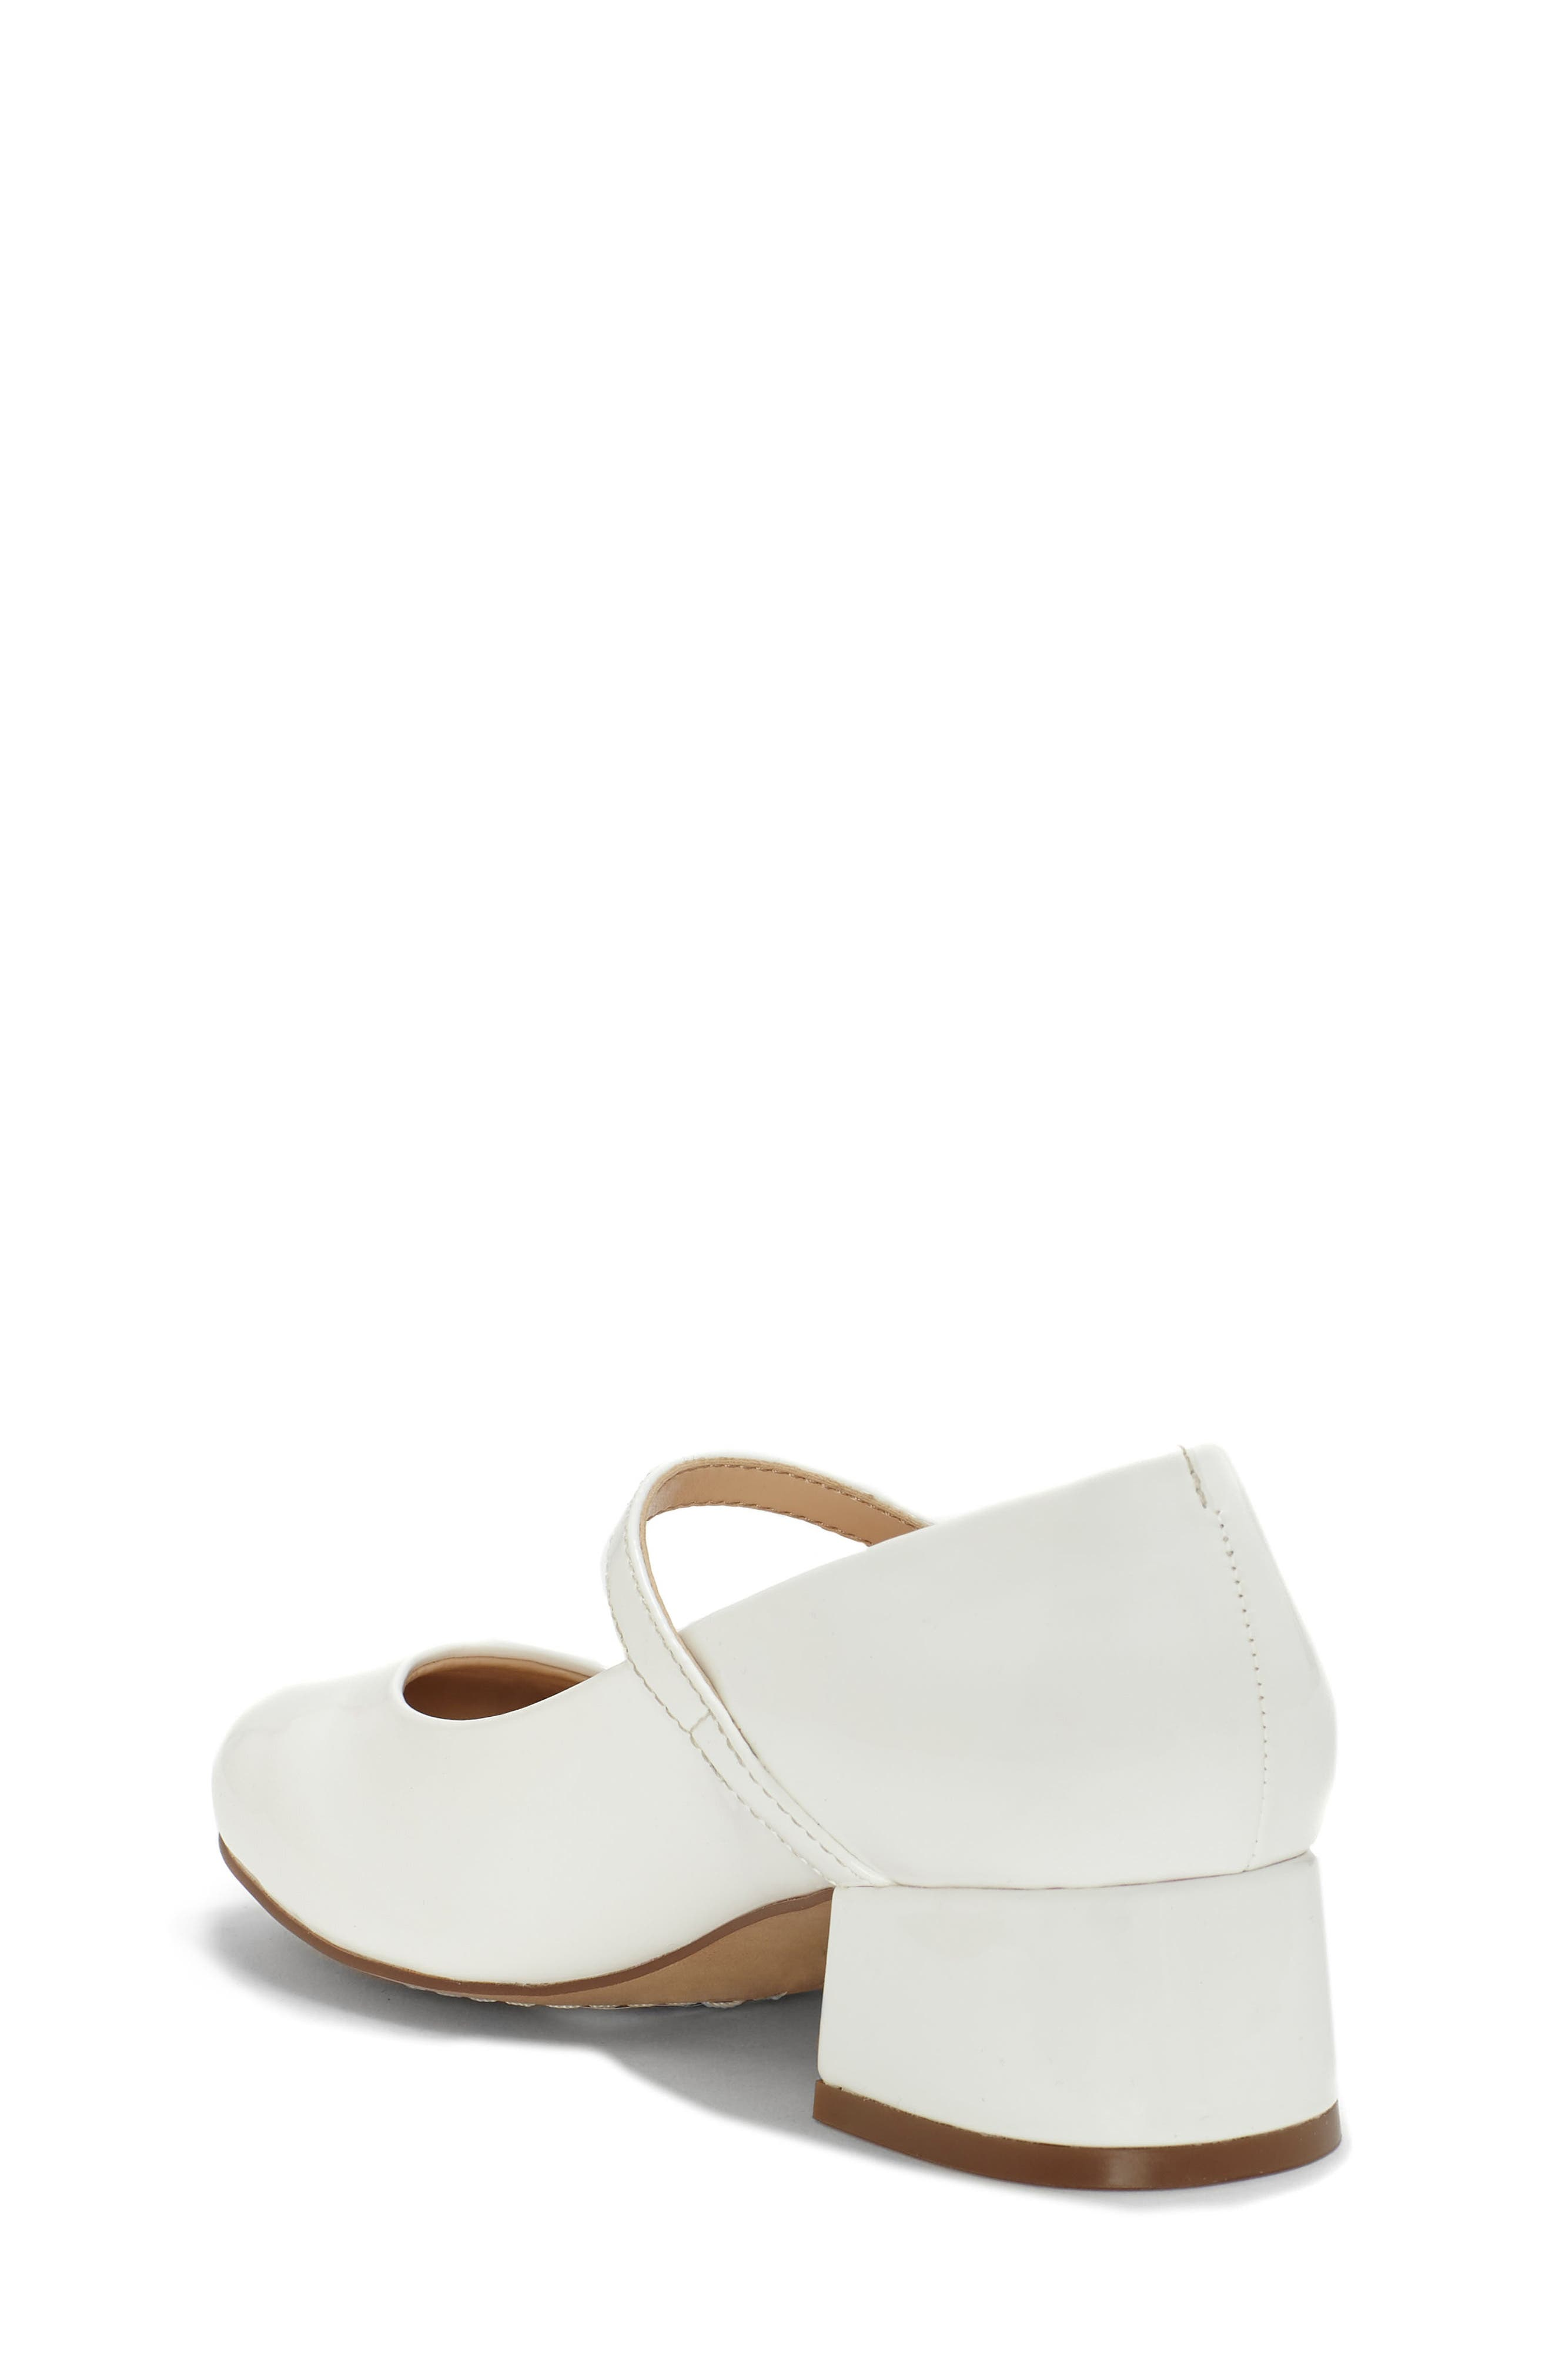 VINCE CAMUTO,                             Brenna Mary Jane Pump,                             Alternate thumbnail 2, color,                             WHITE